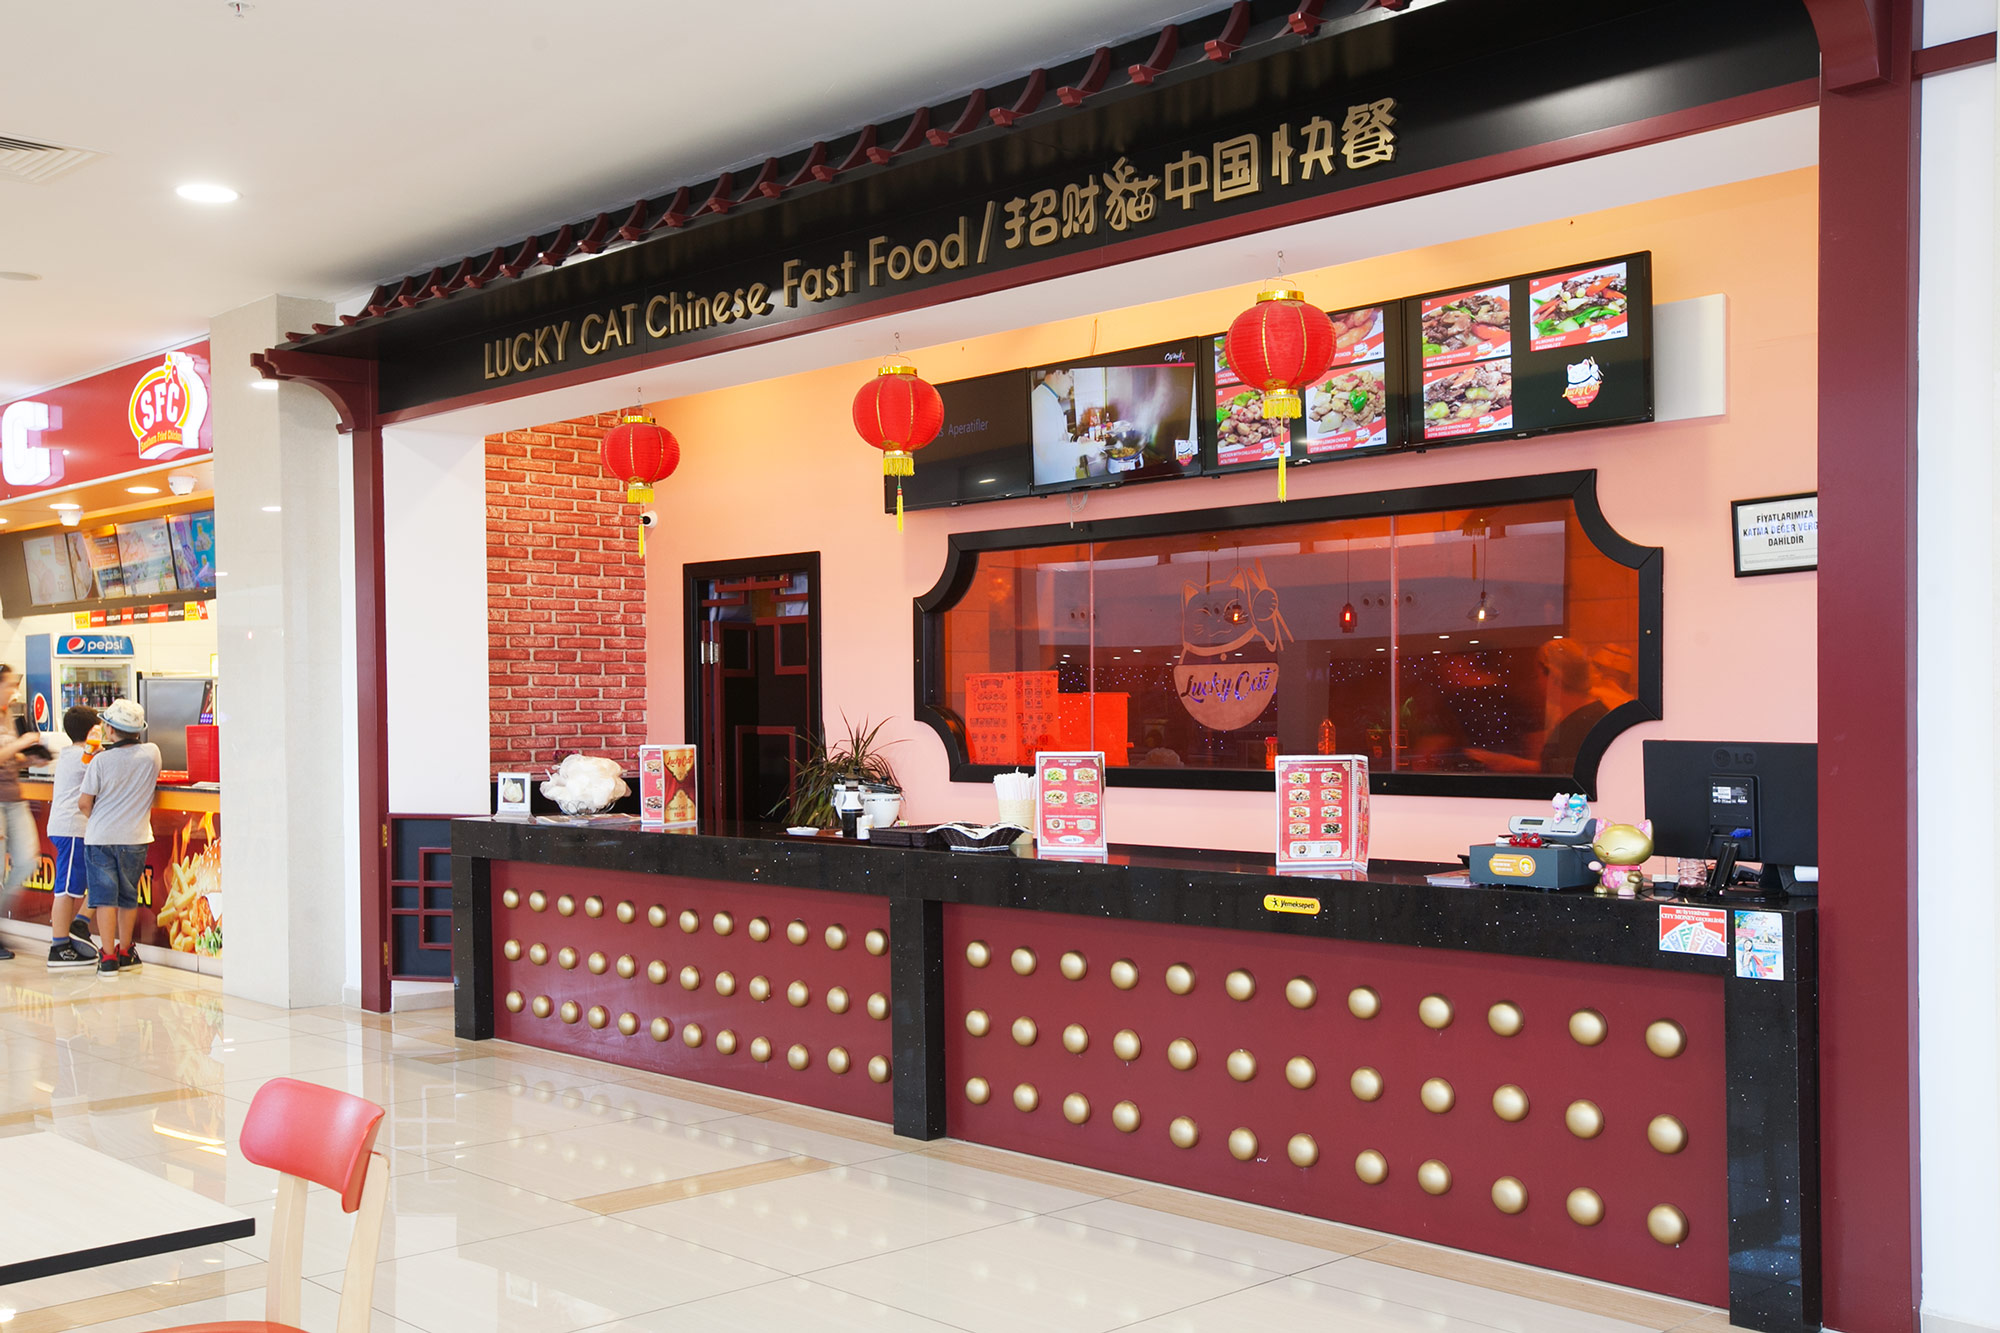 Lucky Cat Chinese Fast Food New Cyprus Guide